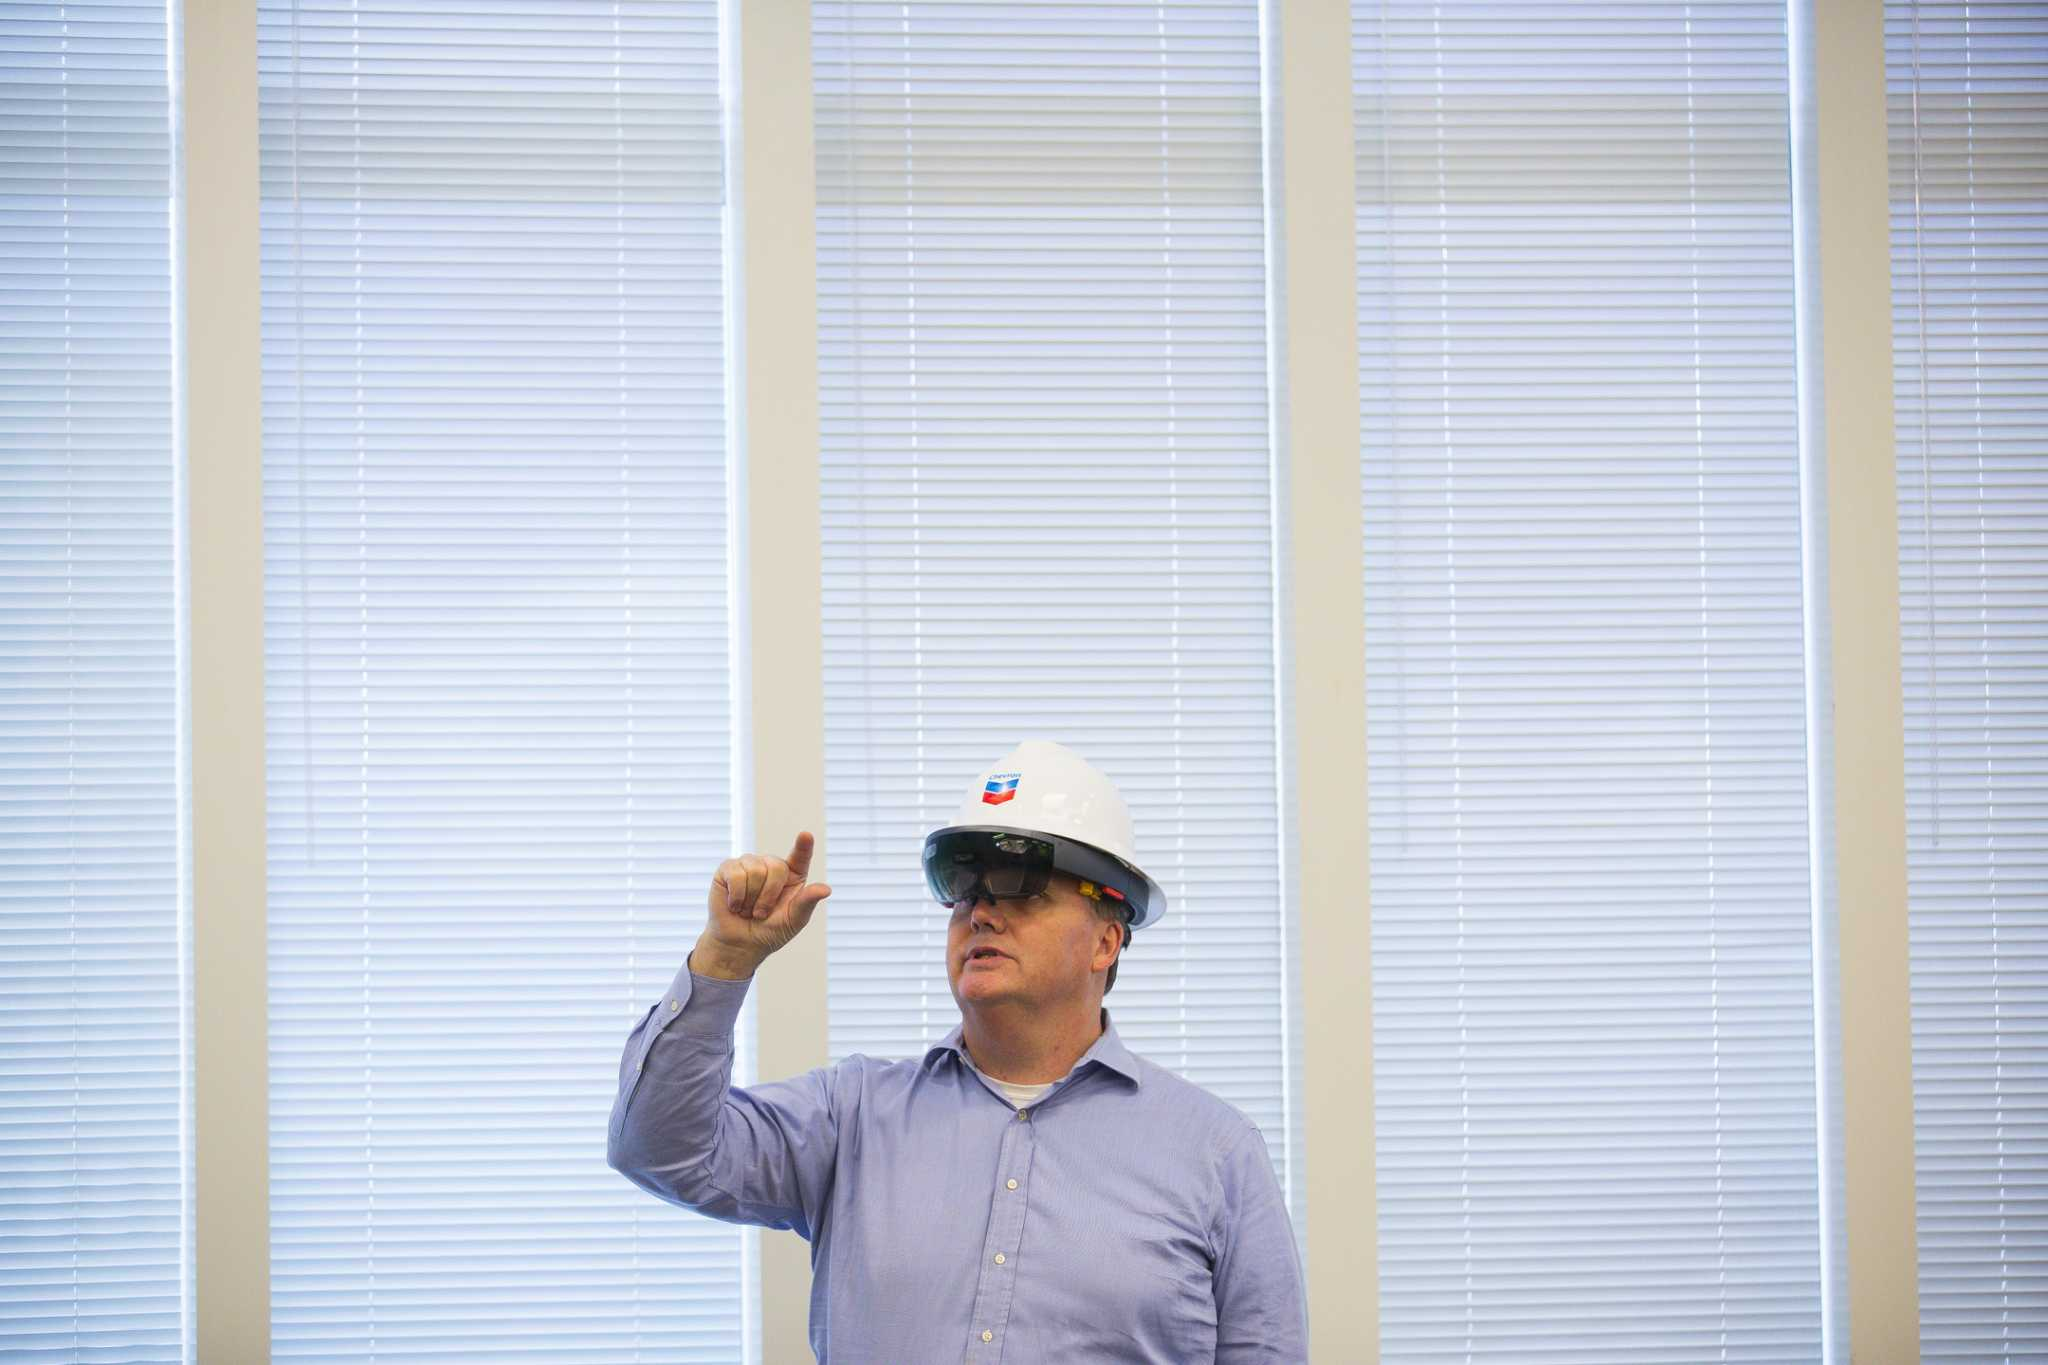 Not being there: How augmented reality is changing the oil industry